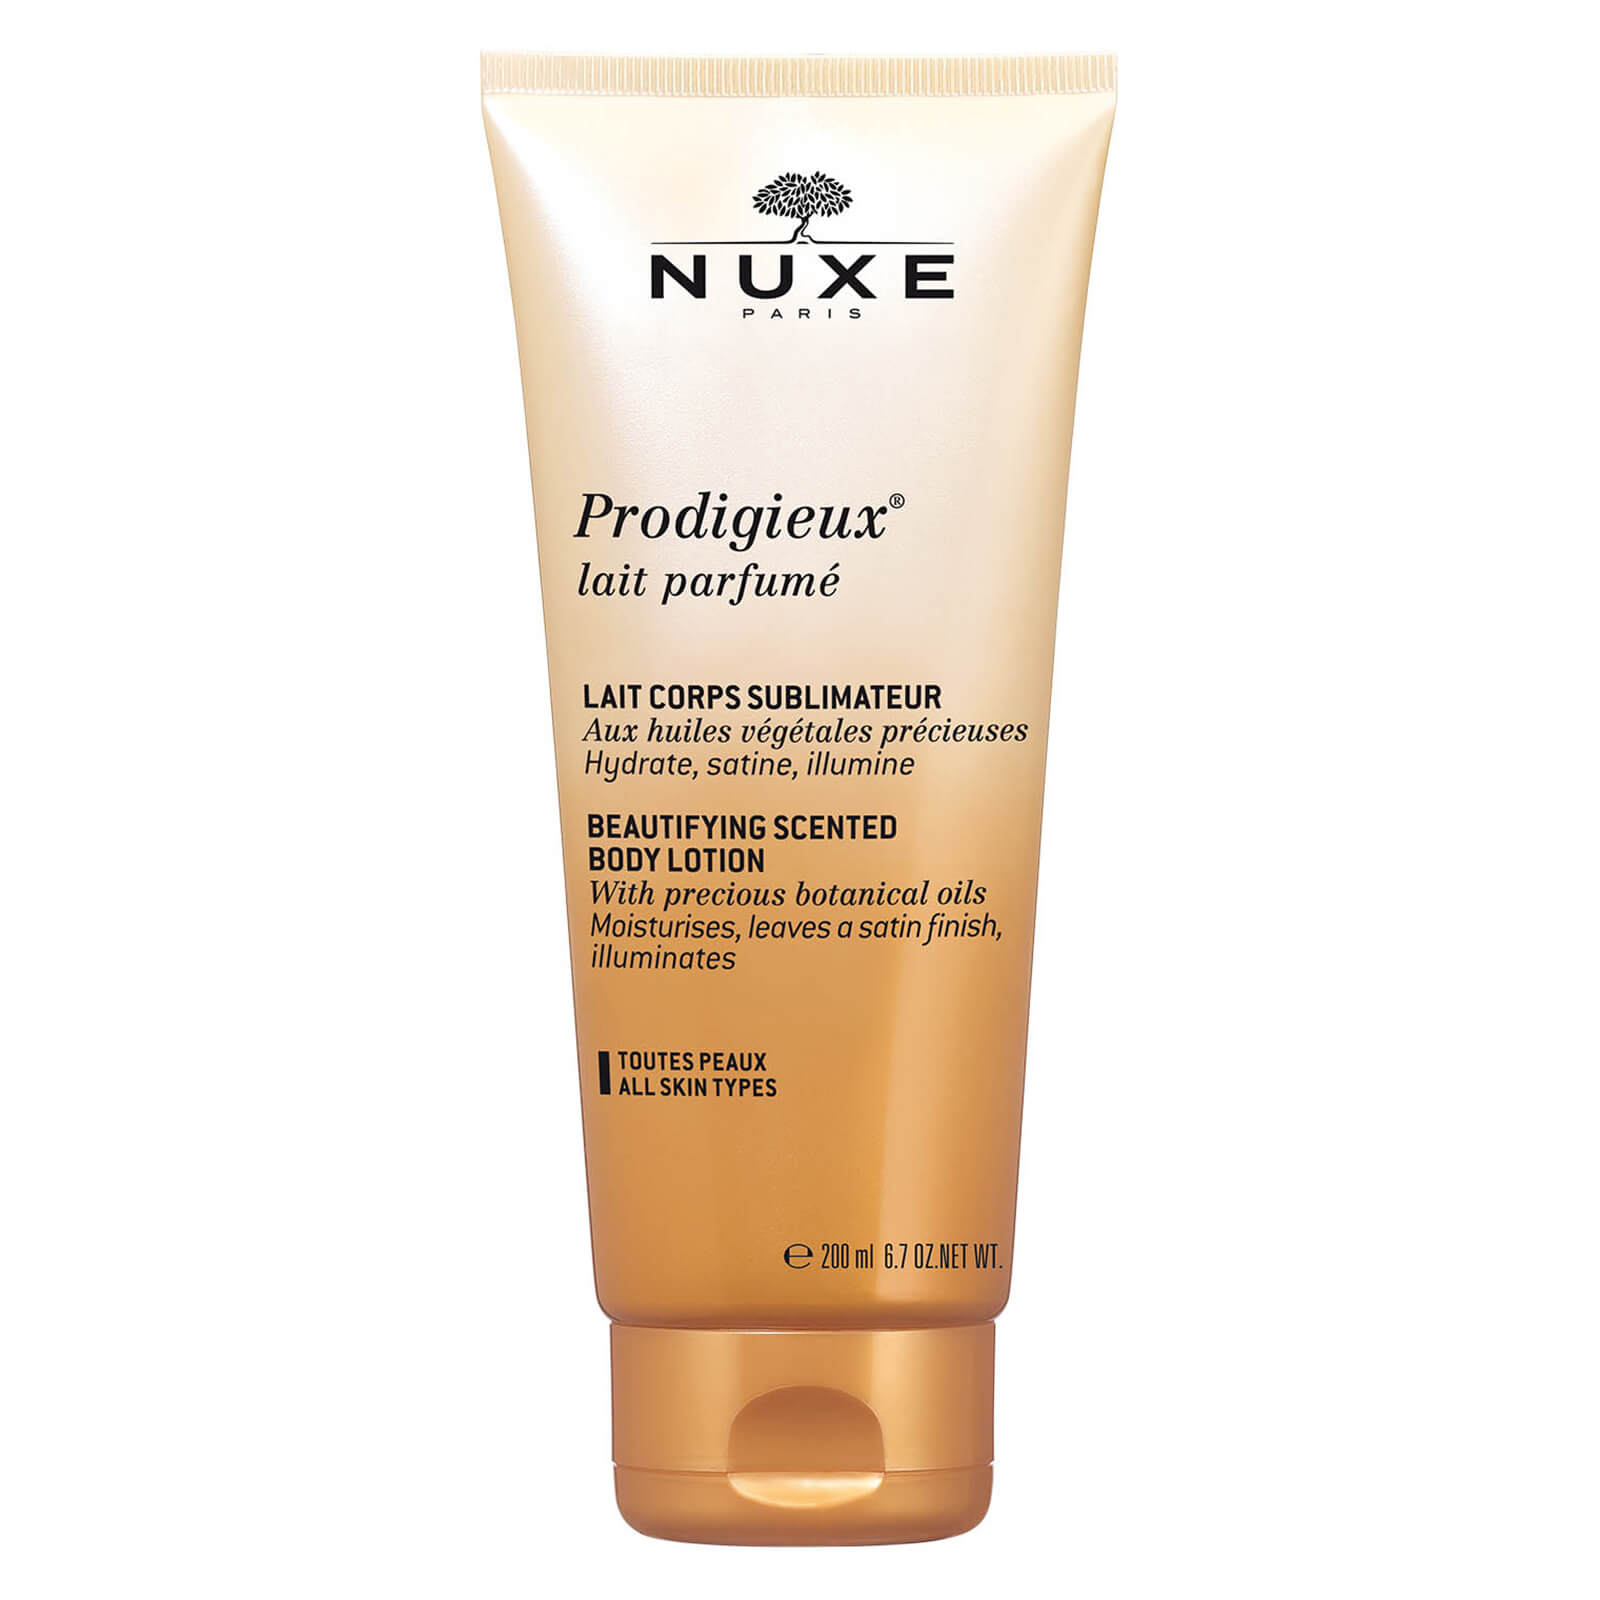 Nuxe Prodigieux Body Lotion 200ml Beautyexpert Super Black Eagle Ii Trigger Assembly World39s Largest Supplier Of Product Description